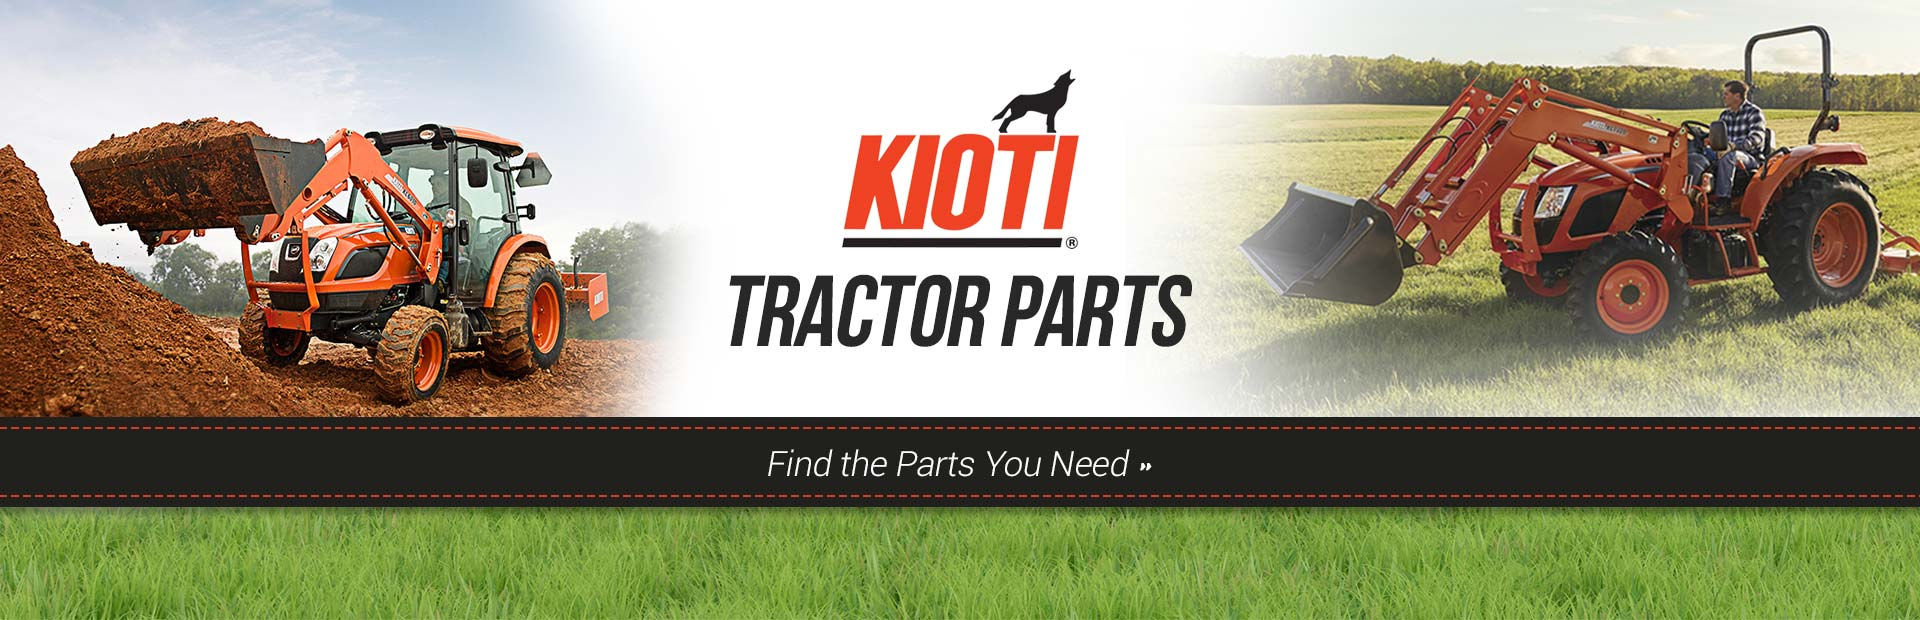 KIOTI Tractor Parts: Click here to find the parts you need.